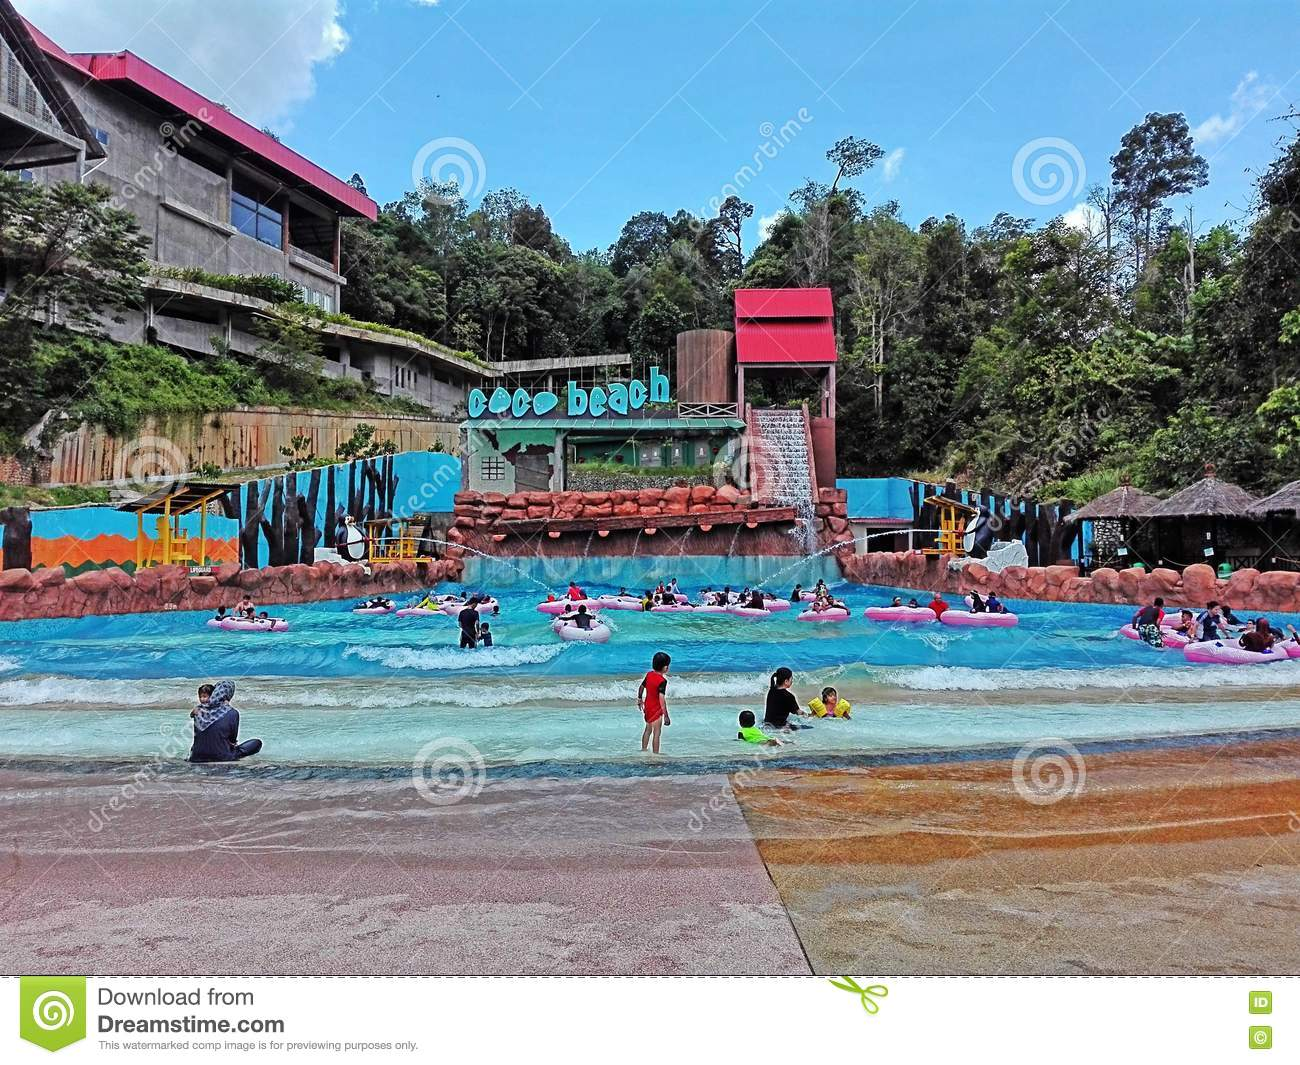 Waterpark editorial stock photo  Image of waterpark, coco